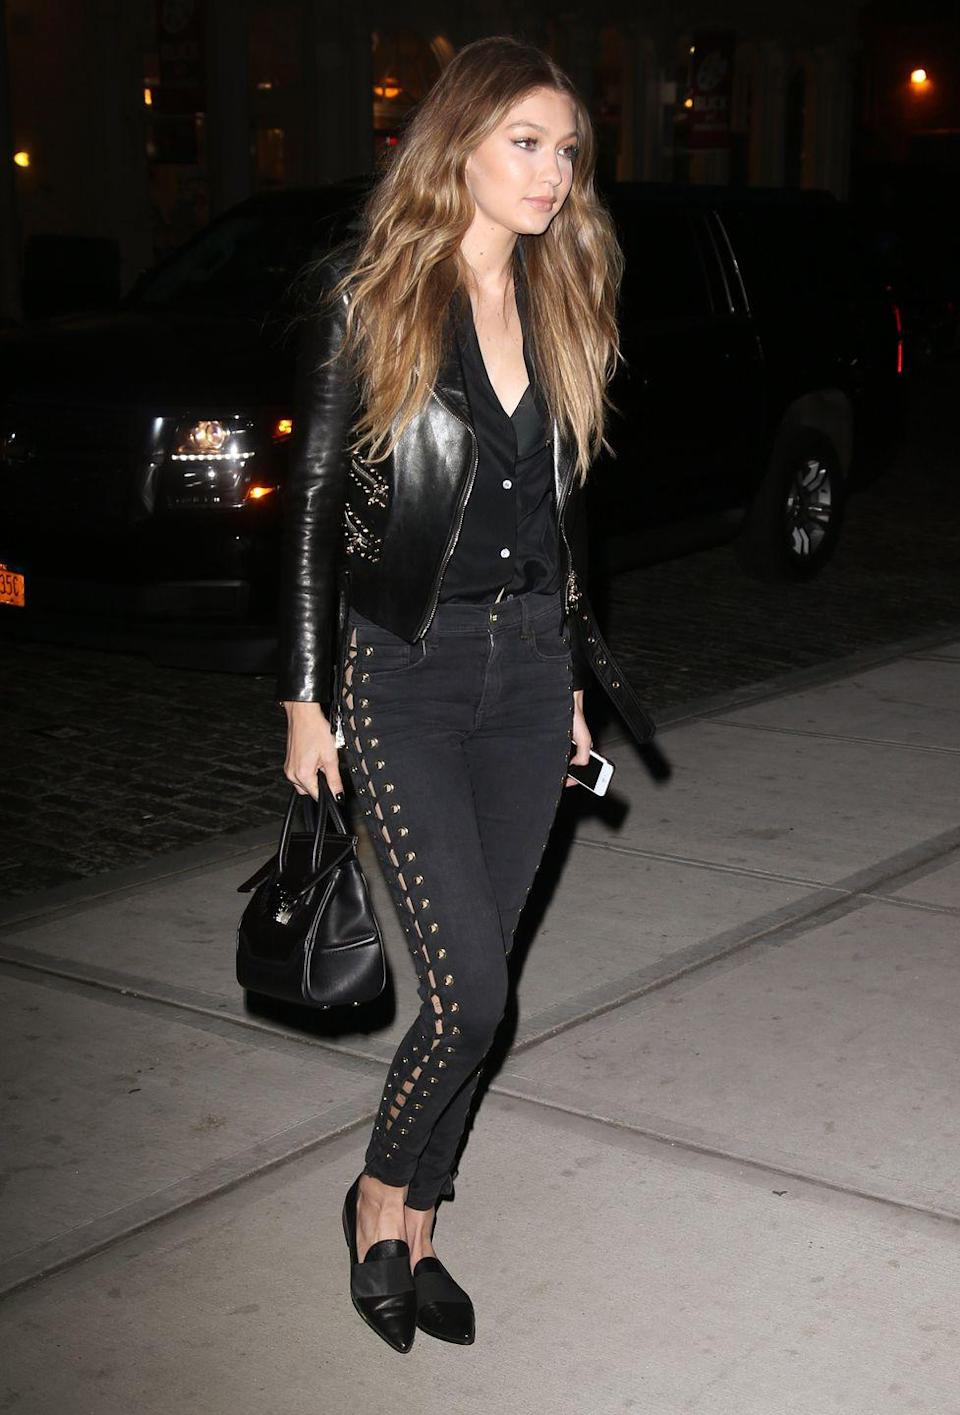 <p>The model stepped out in NYC wearing a Versace leather jacket and black jeans with lace-up detailing down the side, accessorized with a Versace bag and Stuart Weitzman loafers. </p>